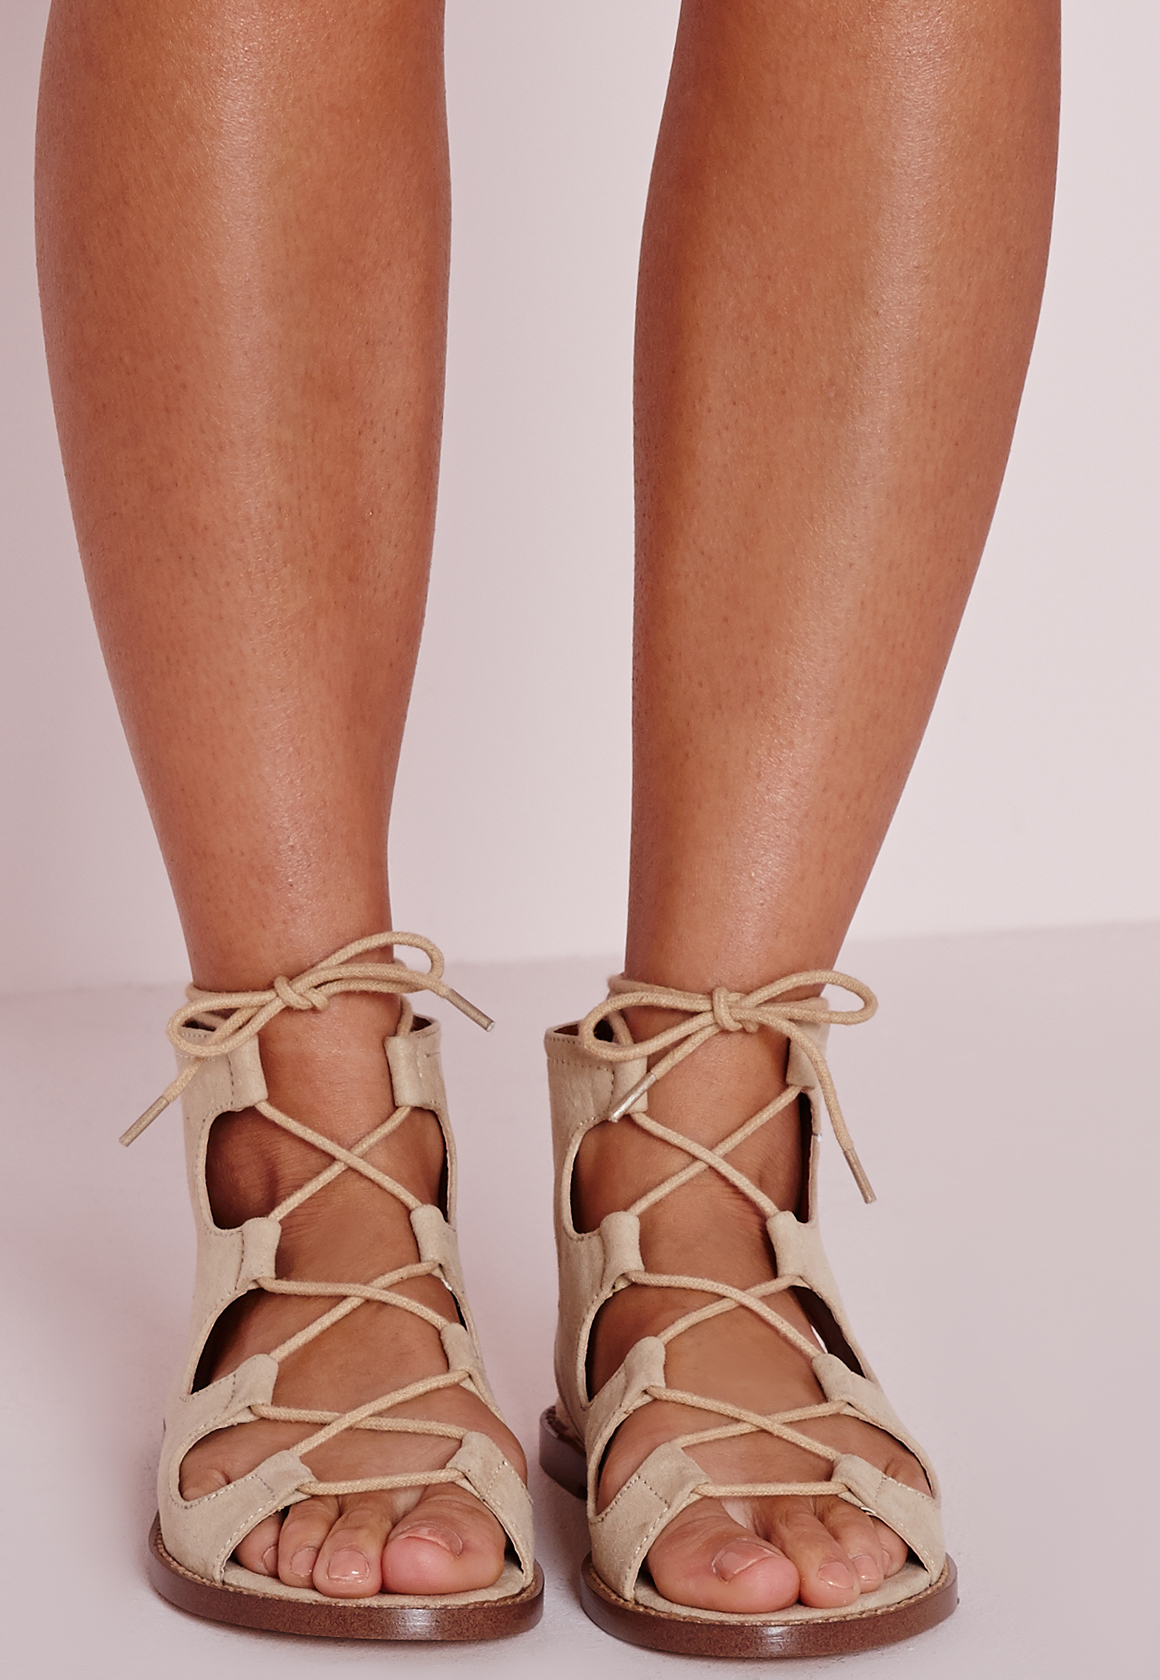 Tie Up Gladiator Heels - Is Heel